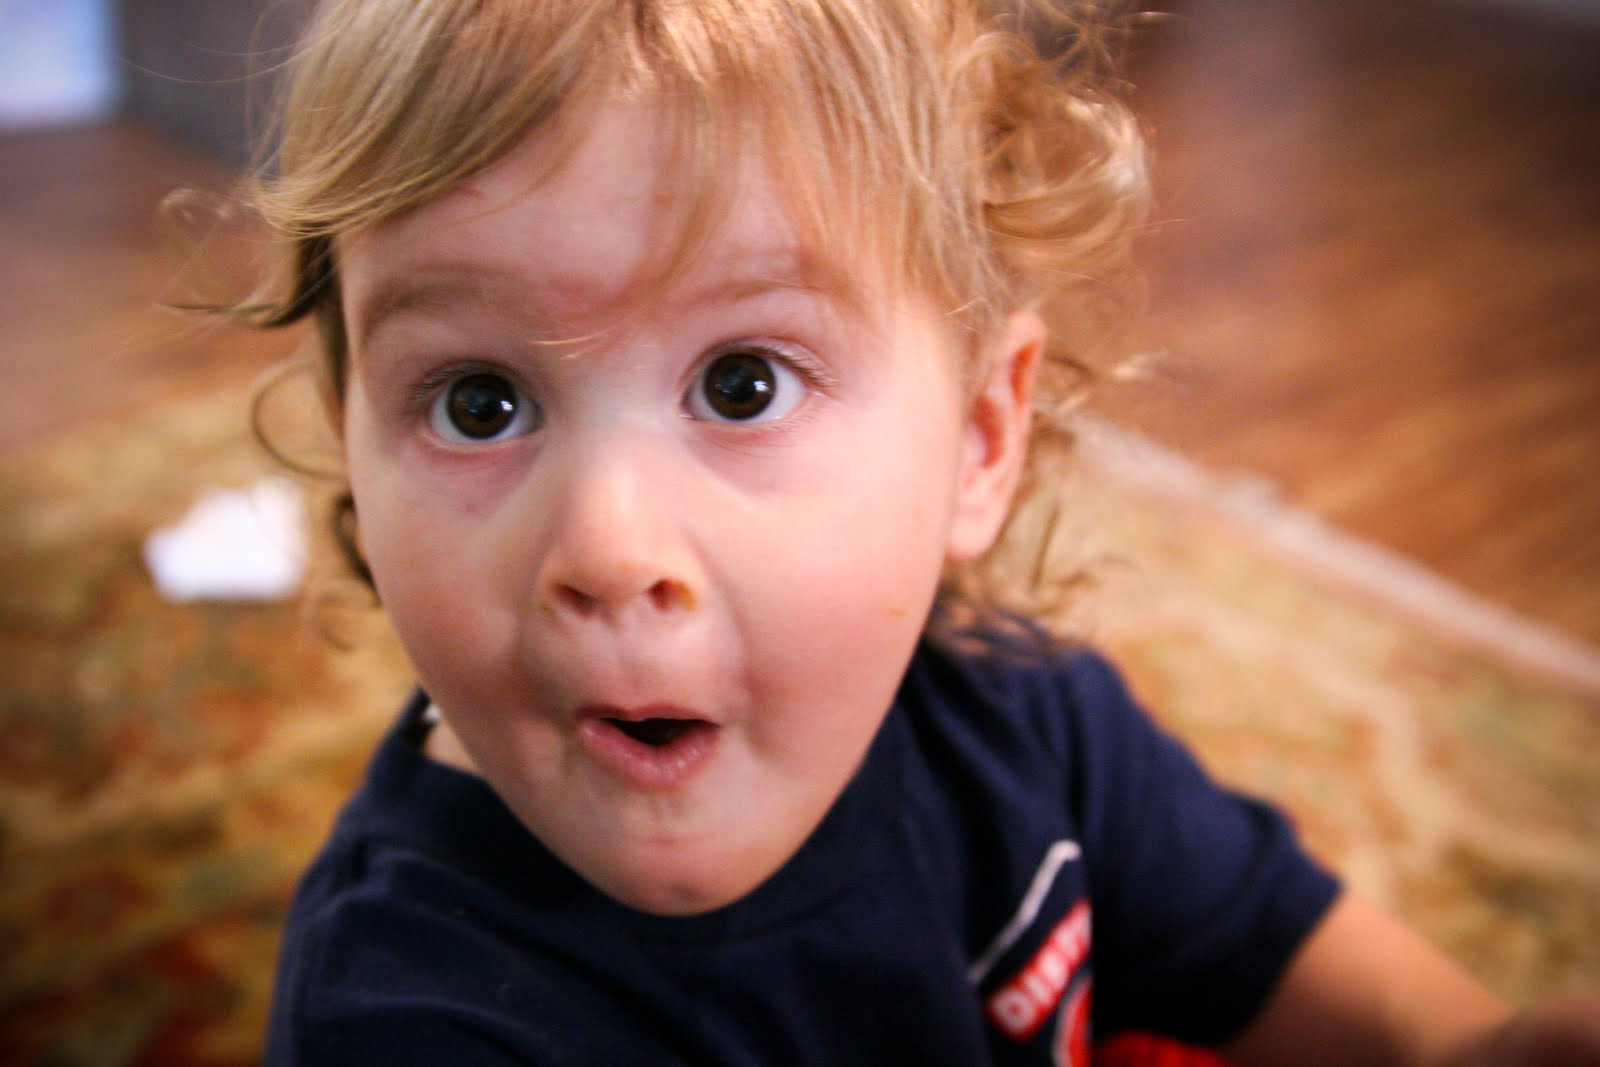 Funny Little Girl Face Meme : Little girl meme face viewing funny pics for